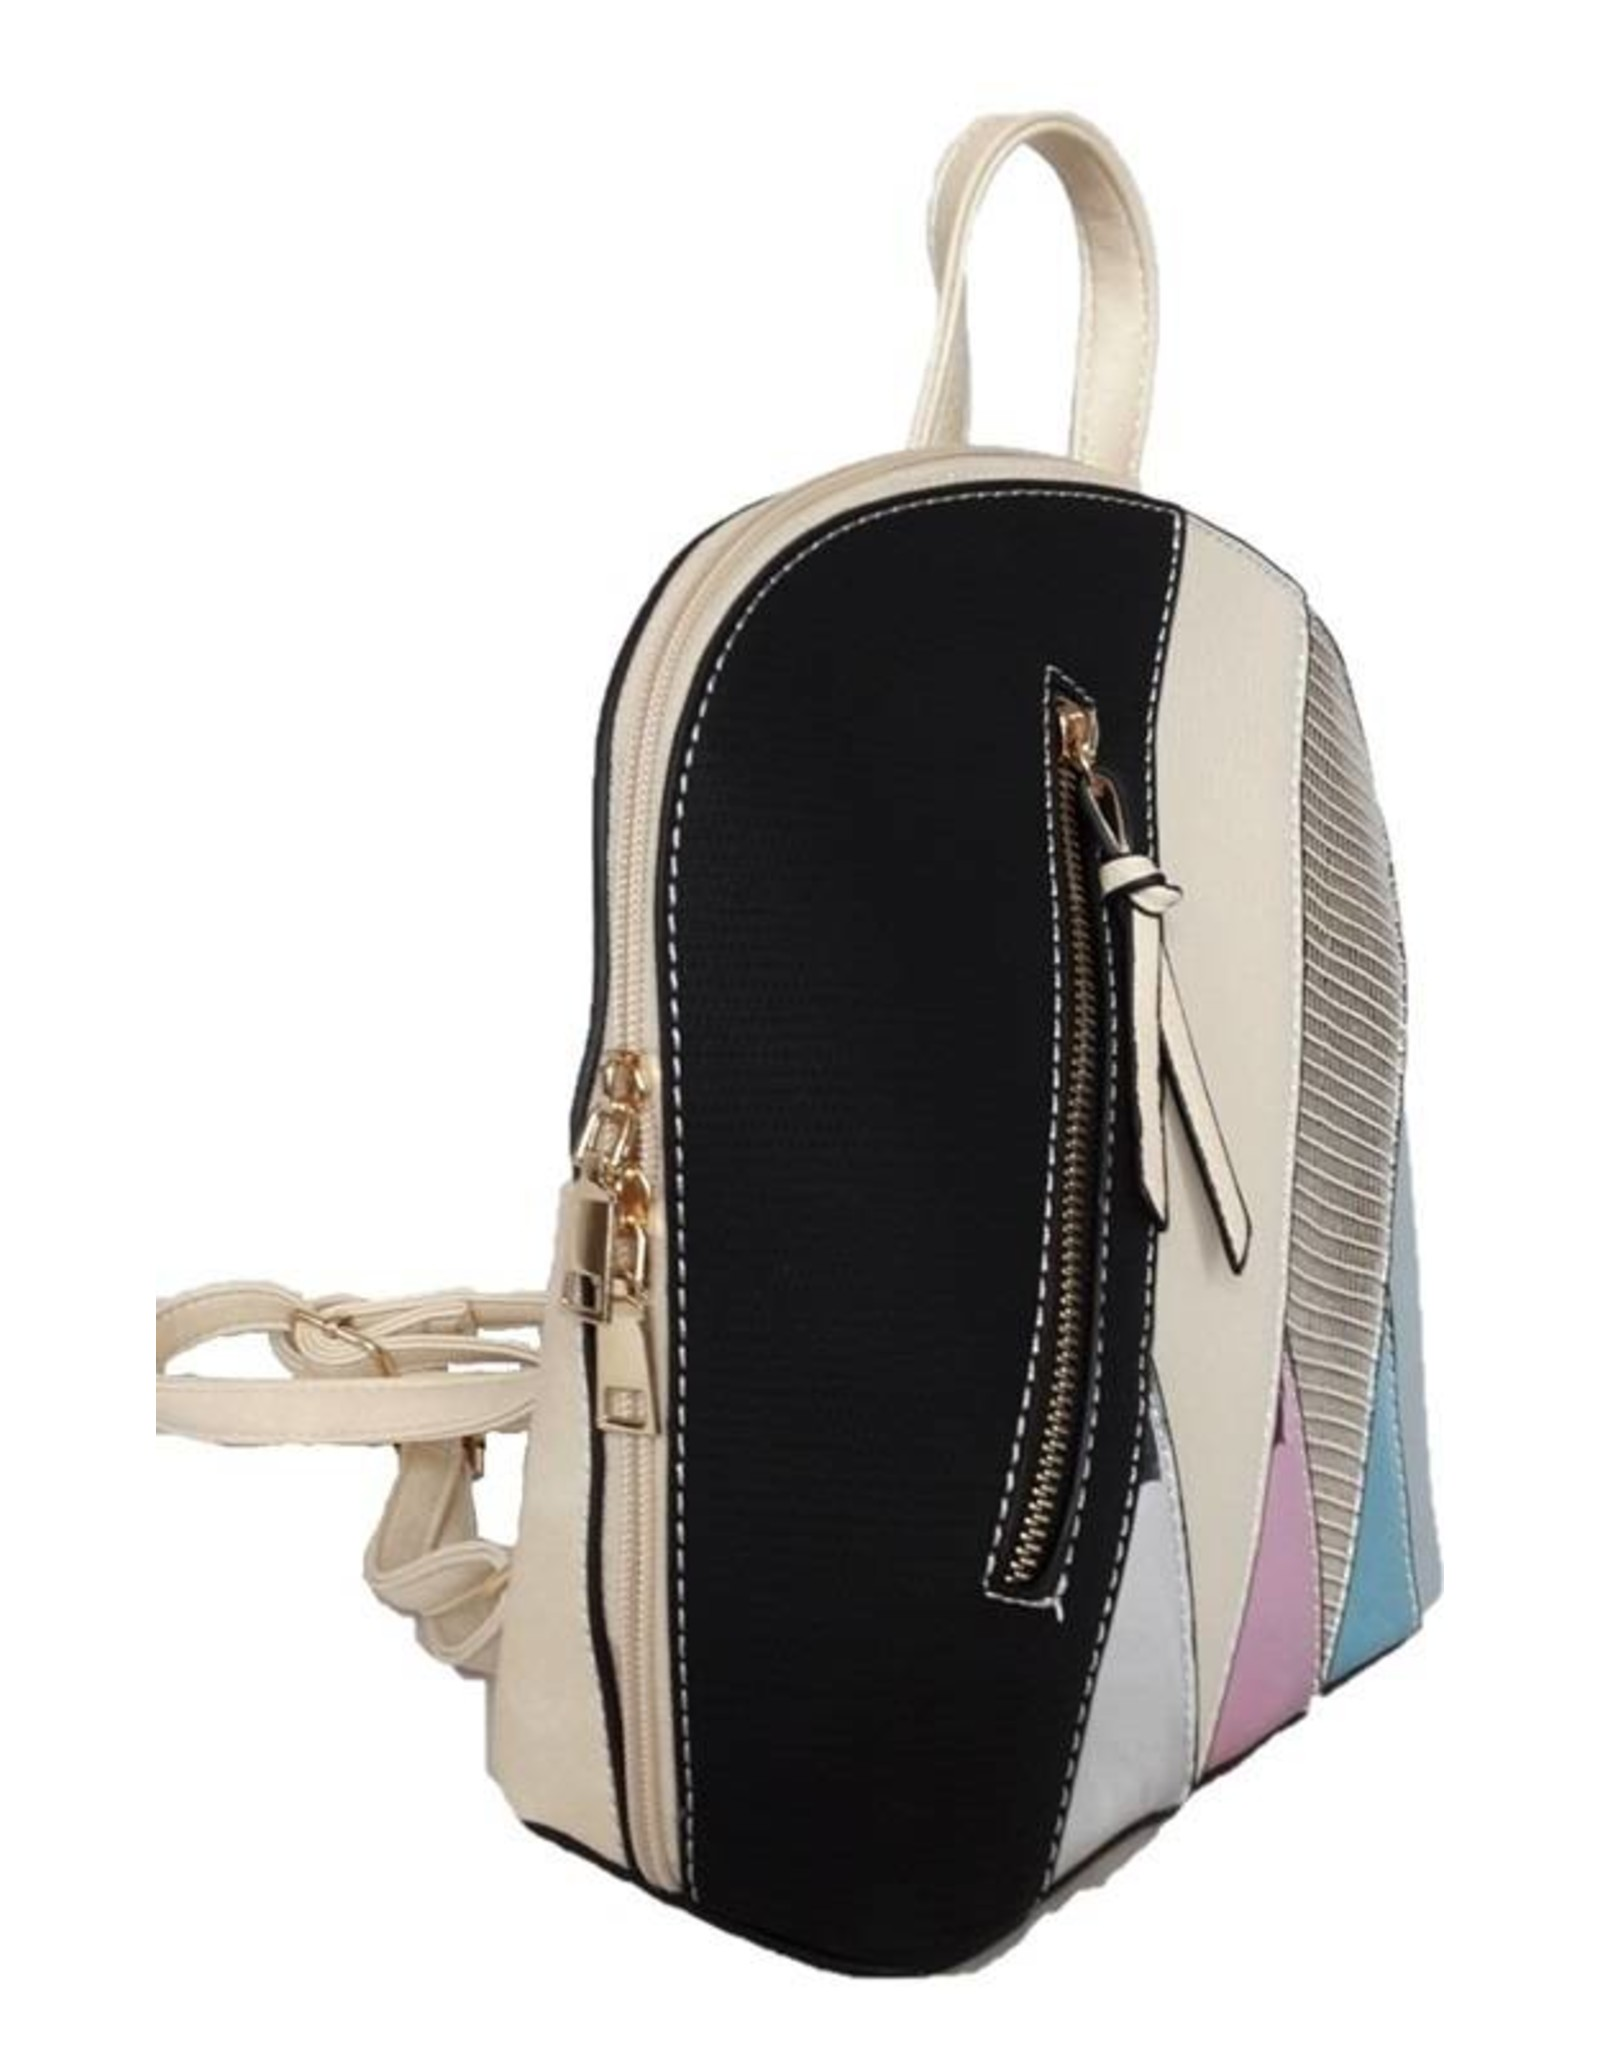 Trukado Backpacks and fanny packs - Fashion backpack with holographic accents black